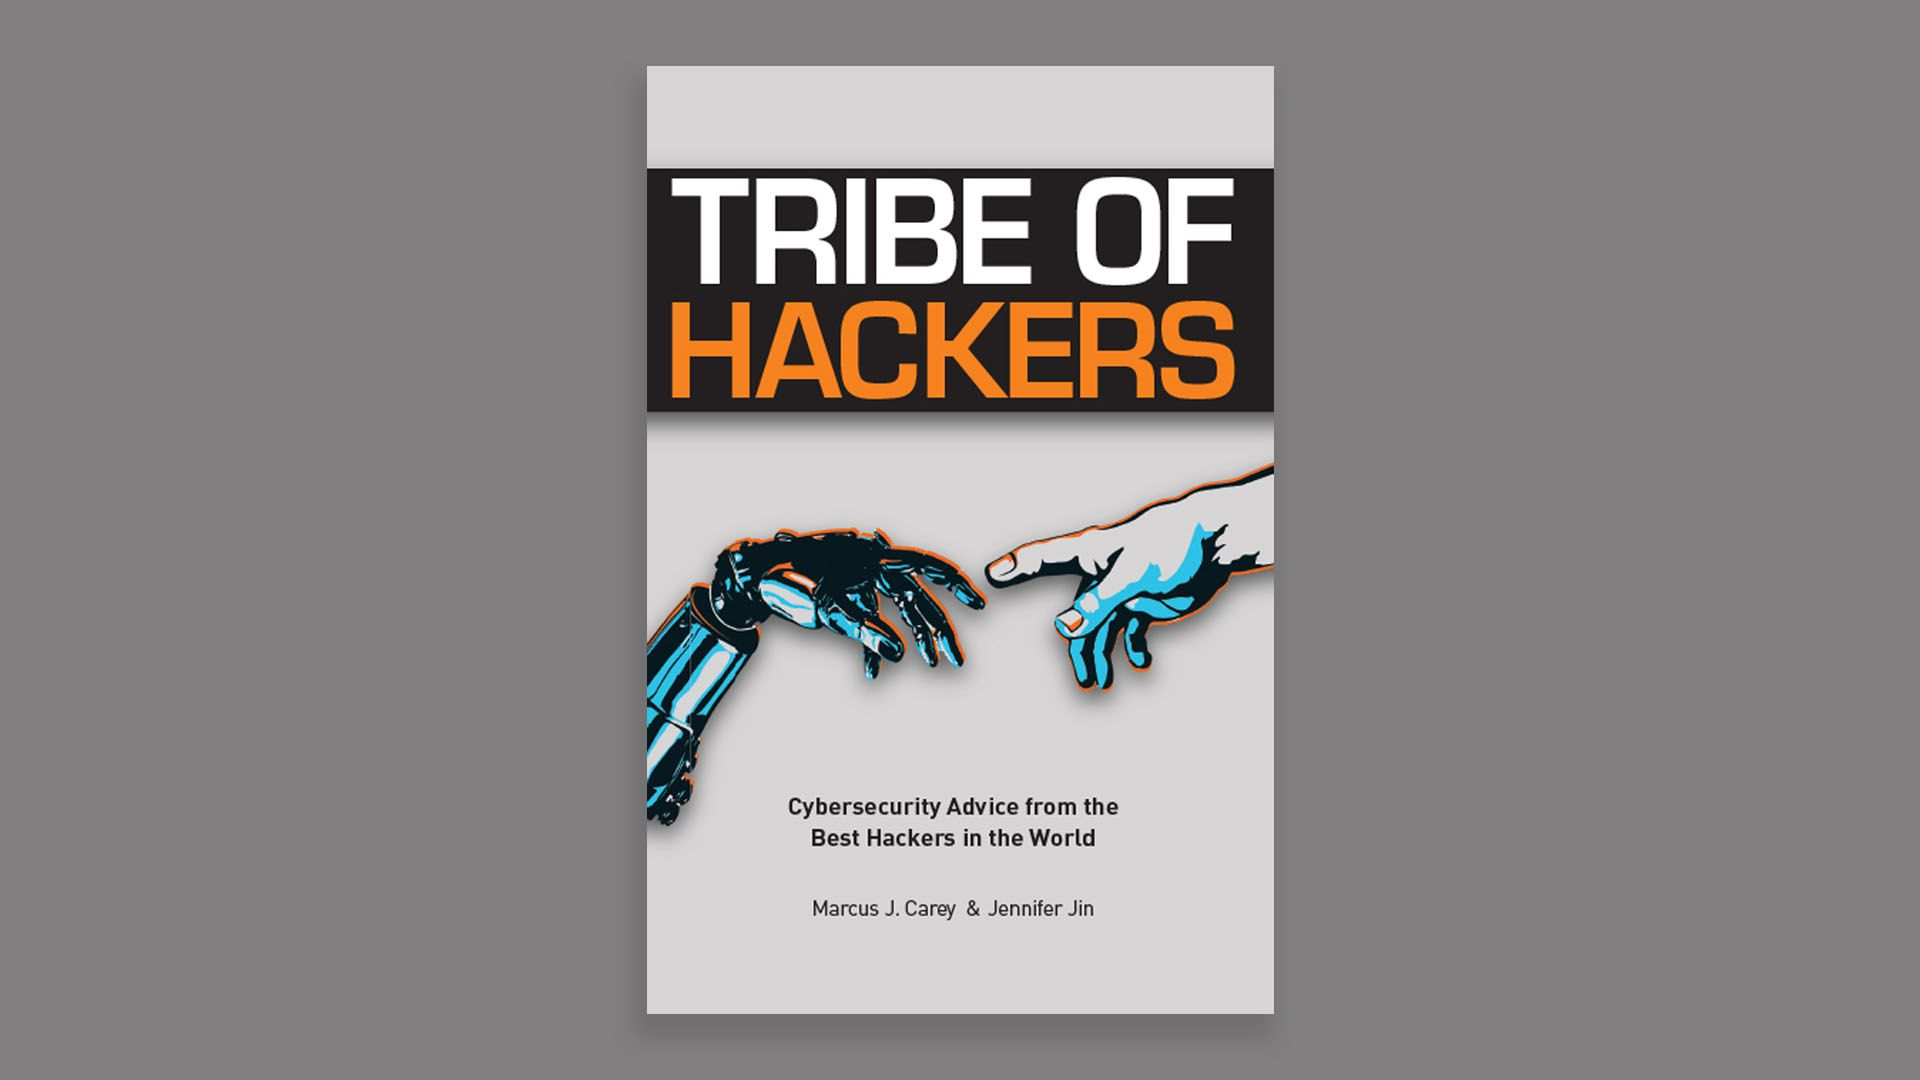 Photo of Tribe of Hackers book cover.